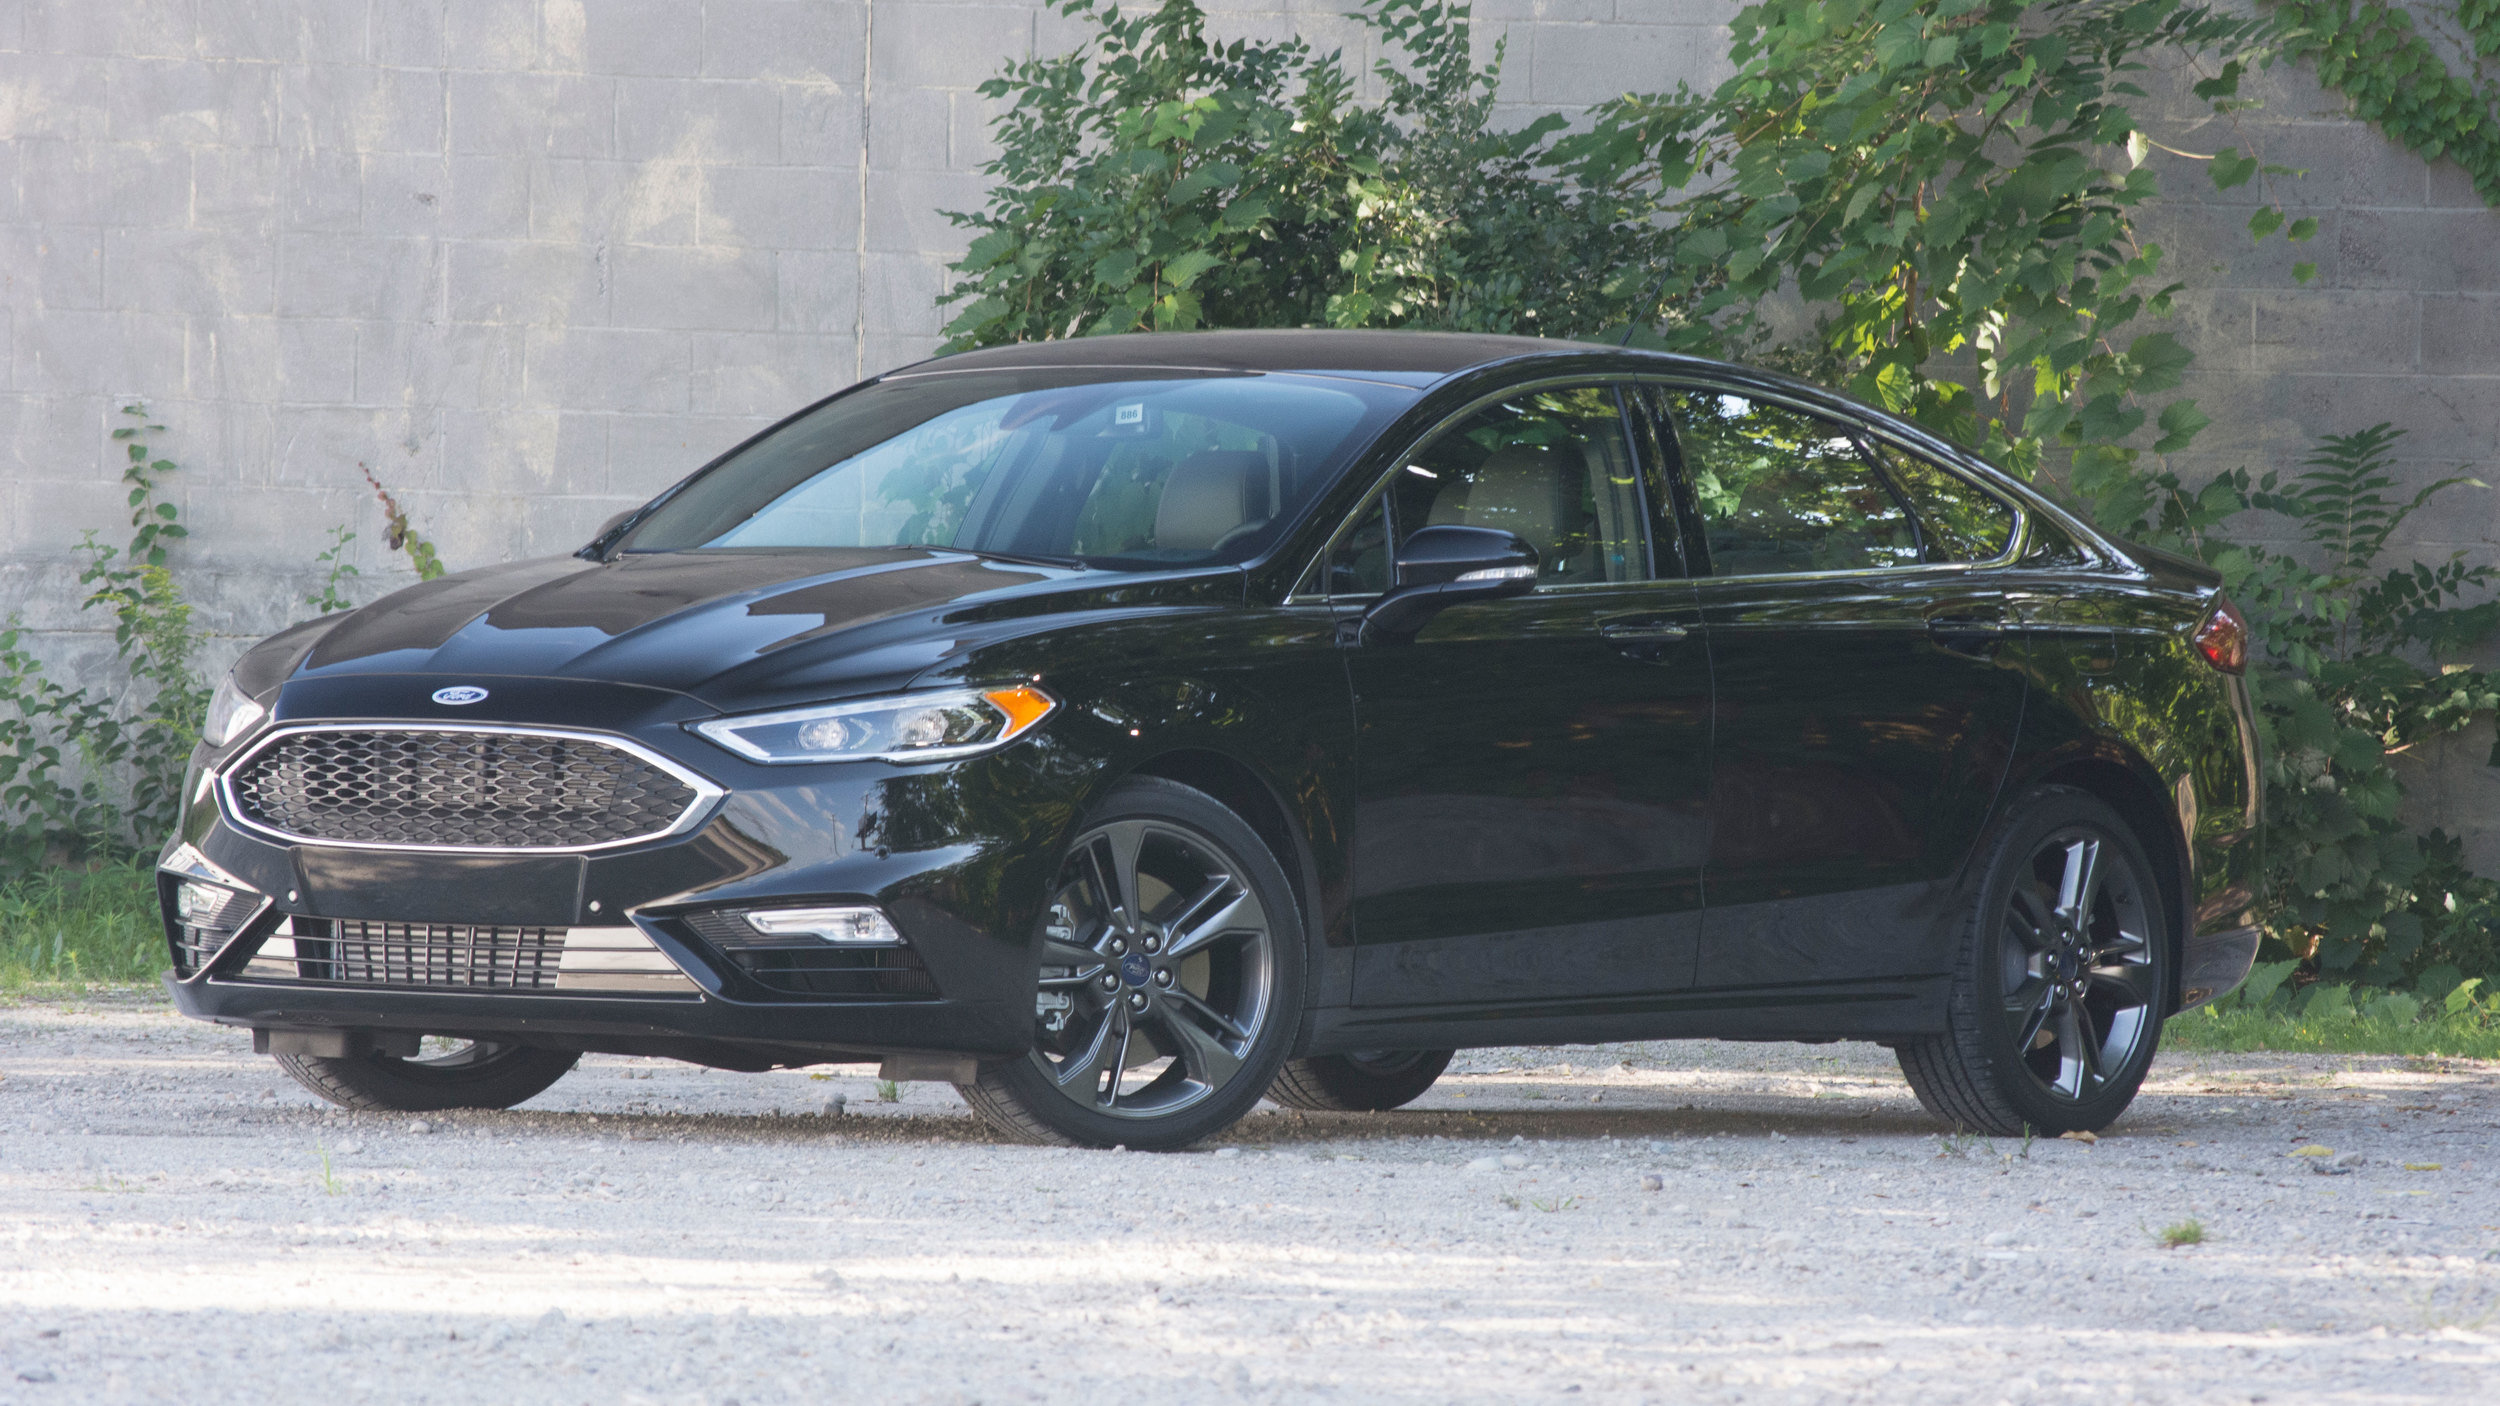 Ford Taurus Sho 0-60 >> Ford Taurus Sho 0 60 Upcoming New Car Release 2020